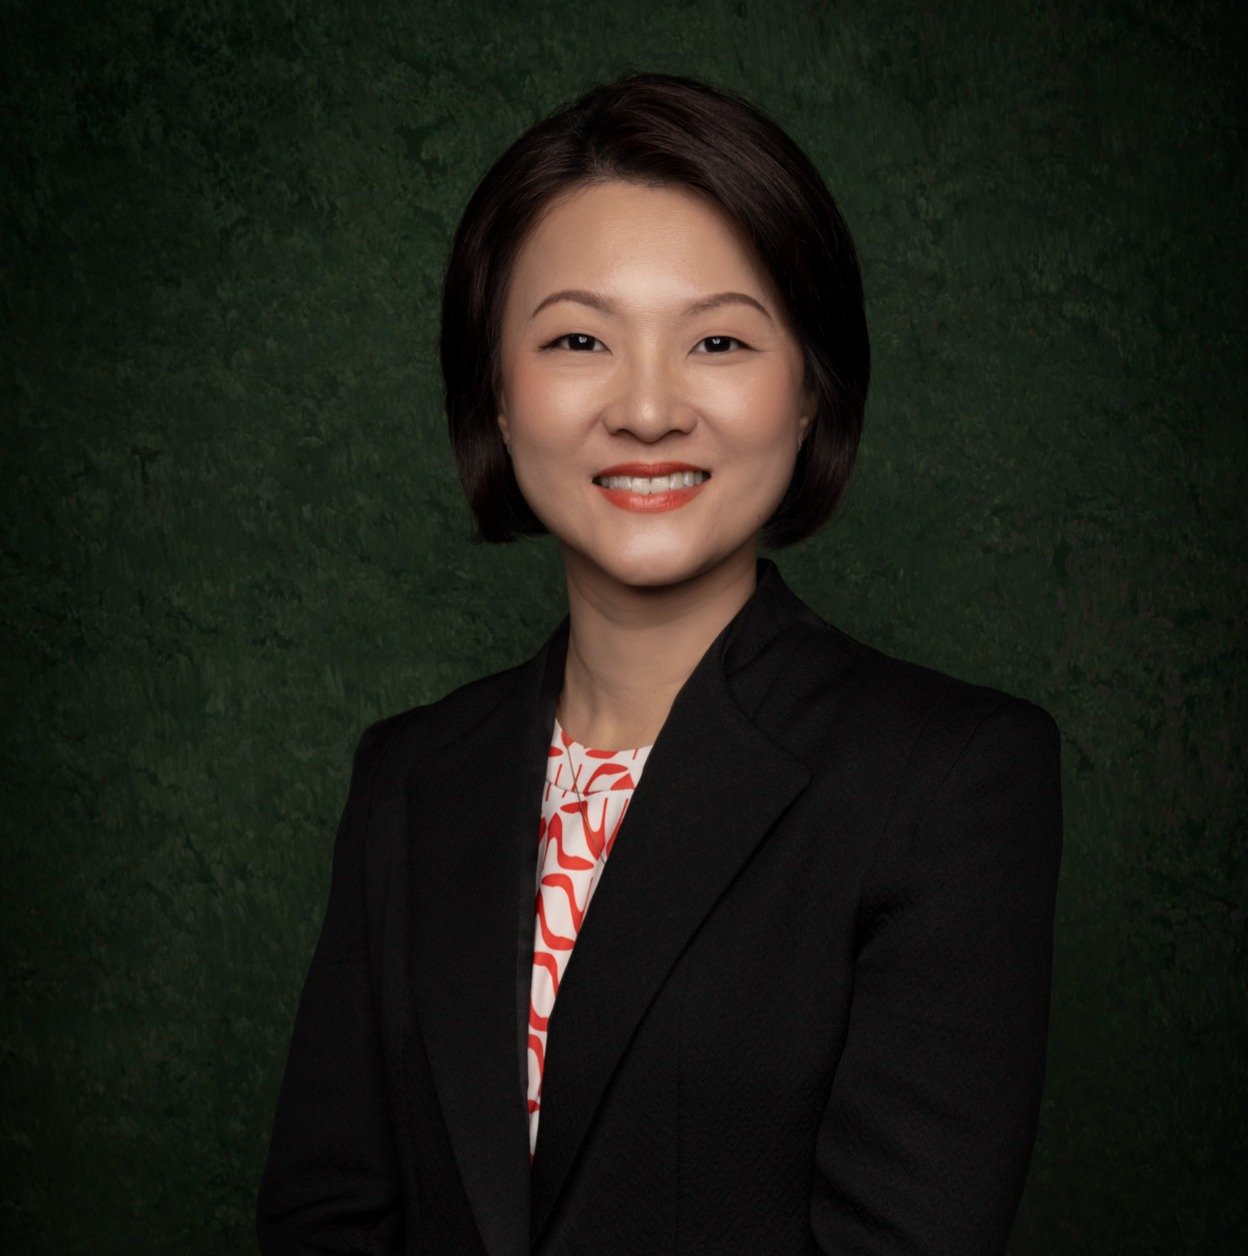 Oasis KR Asia Challenges that women still face in the workplace